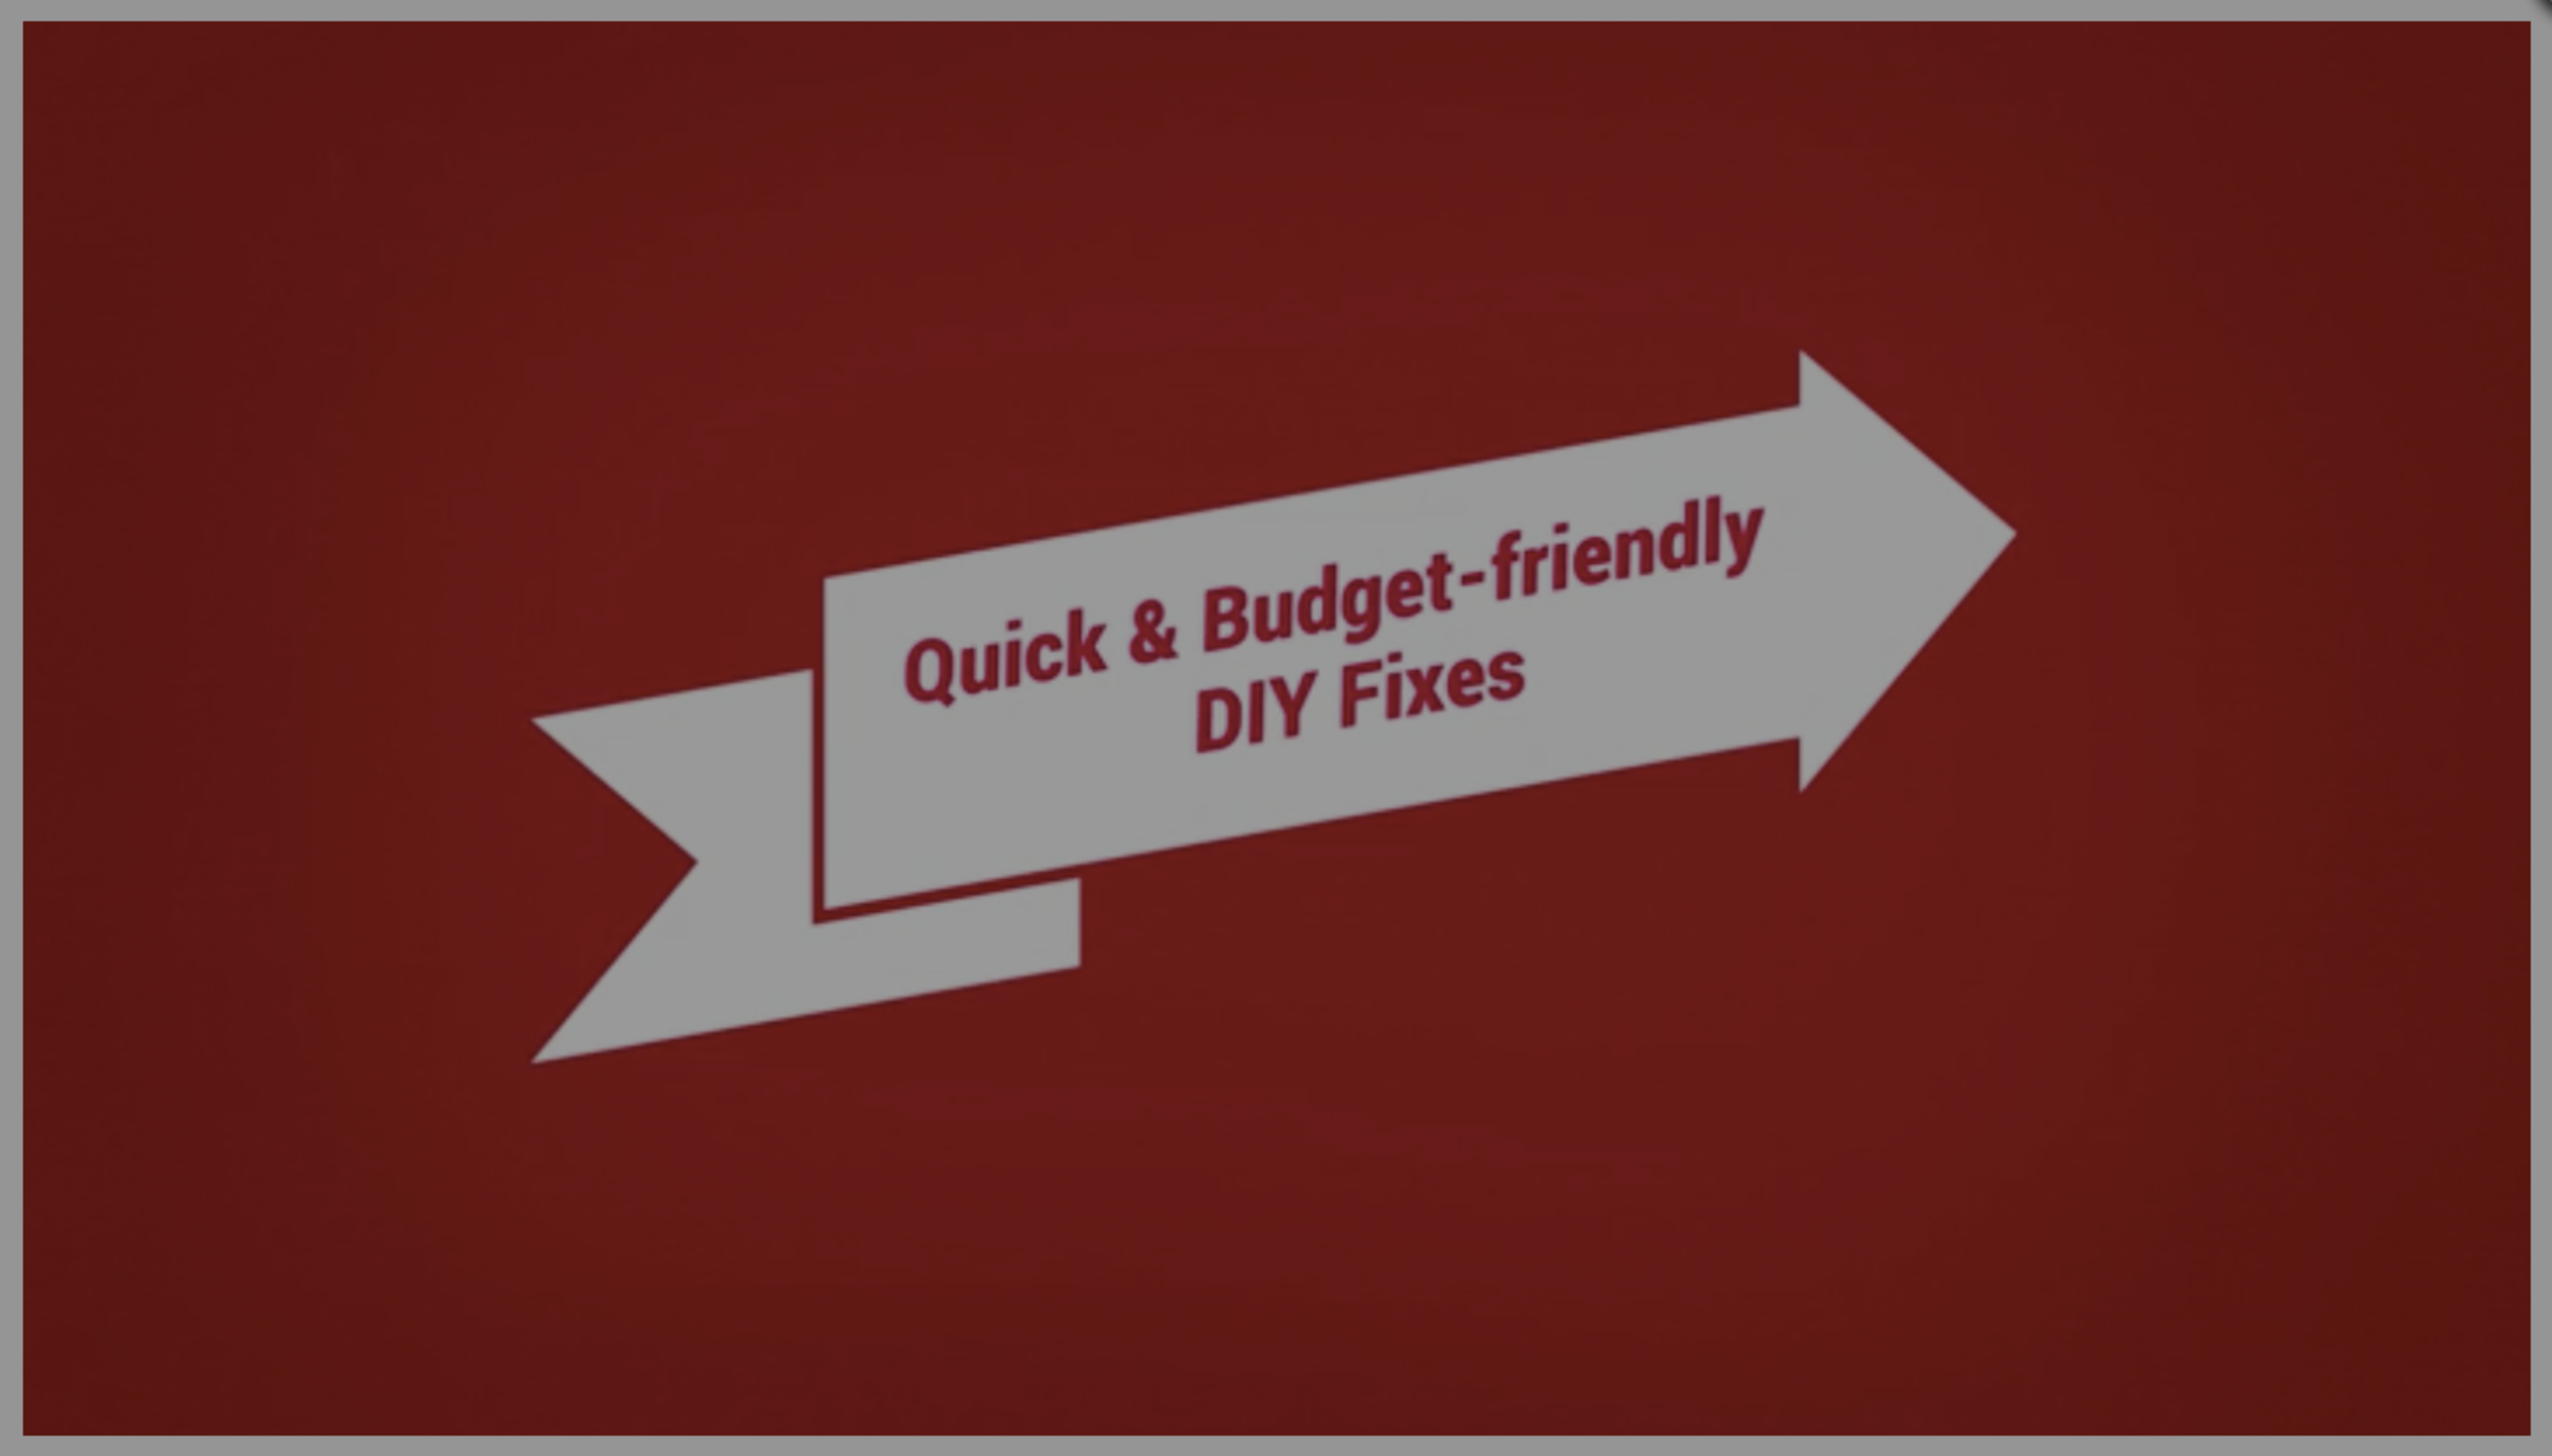 Realtor.com presents: Best DIY bang for your buck